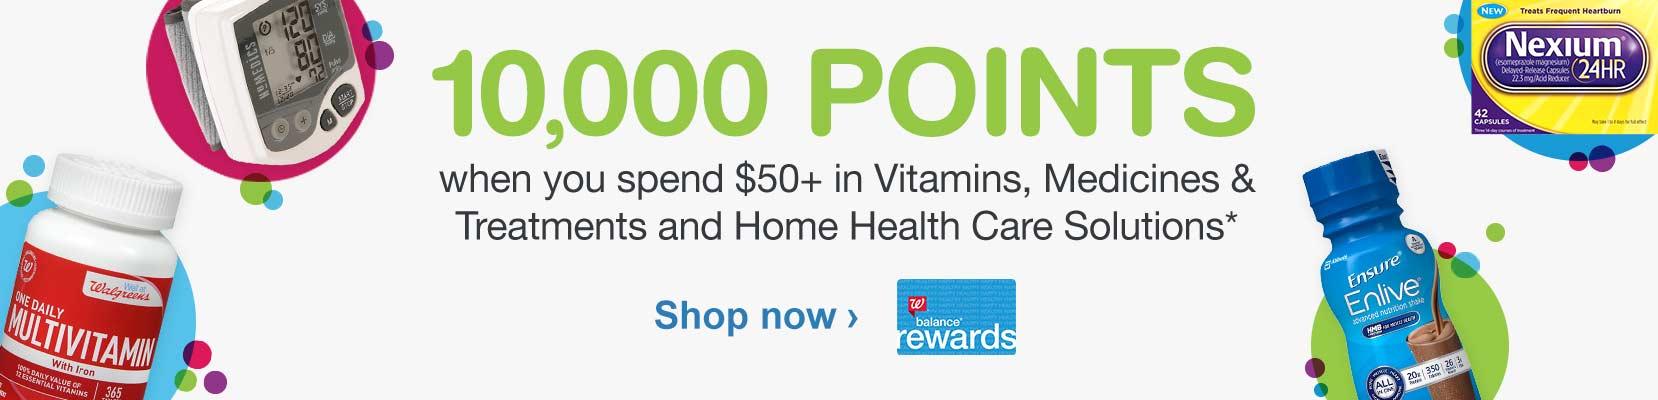 Balance(R) Rewards. 10,000 points when you spend $50+ in Vitamins, Medicines & Treatments and Home Health Care Solutions.* Shop now.